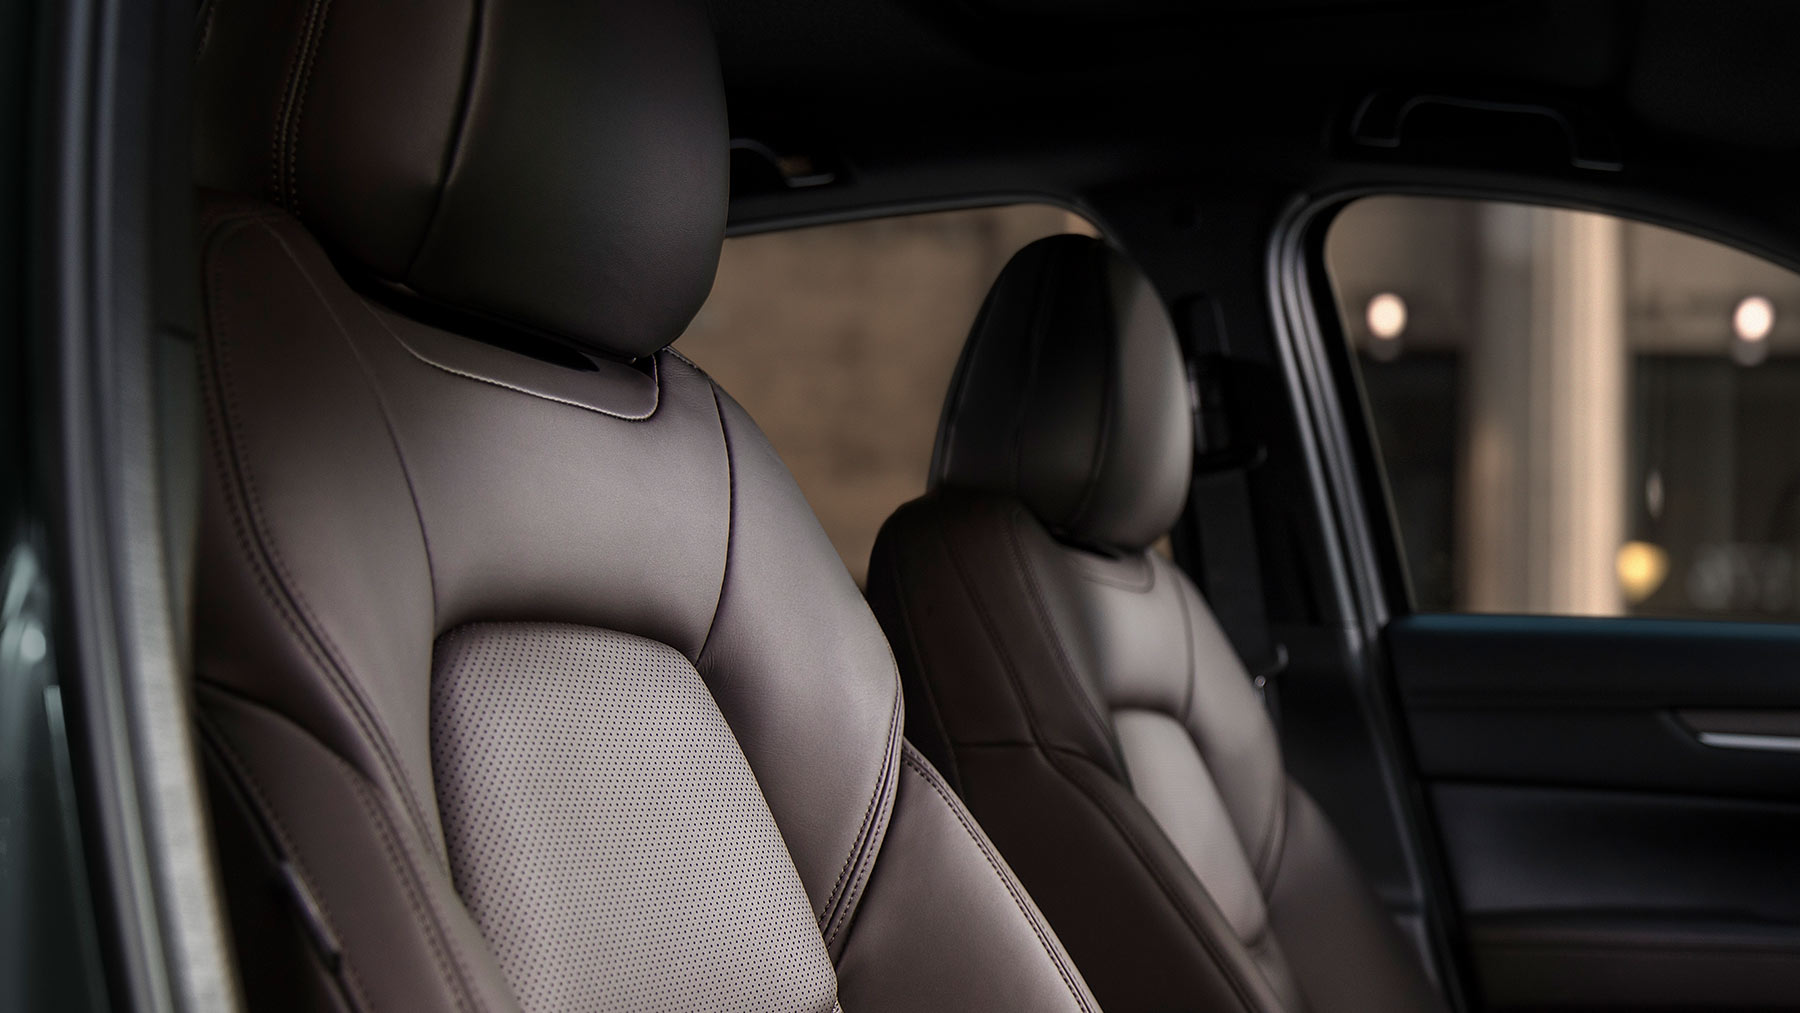 Luxurious Seats in the 2019 Mazda CX-5